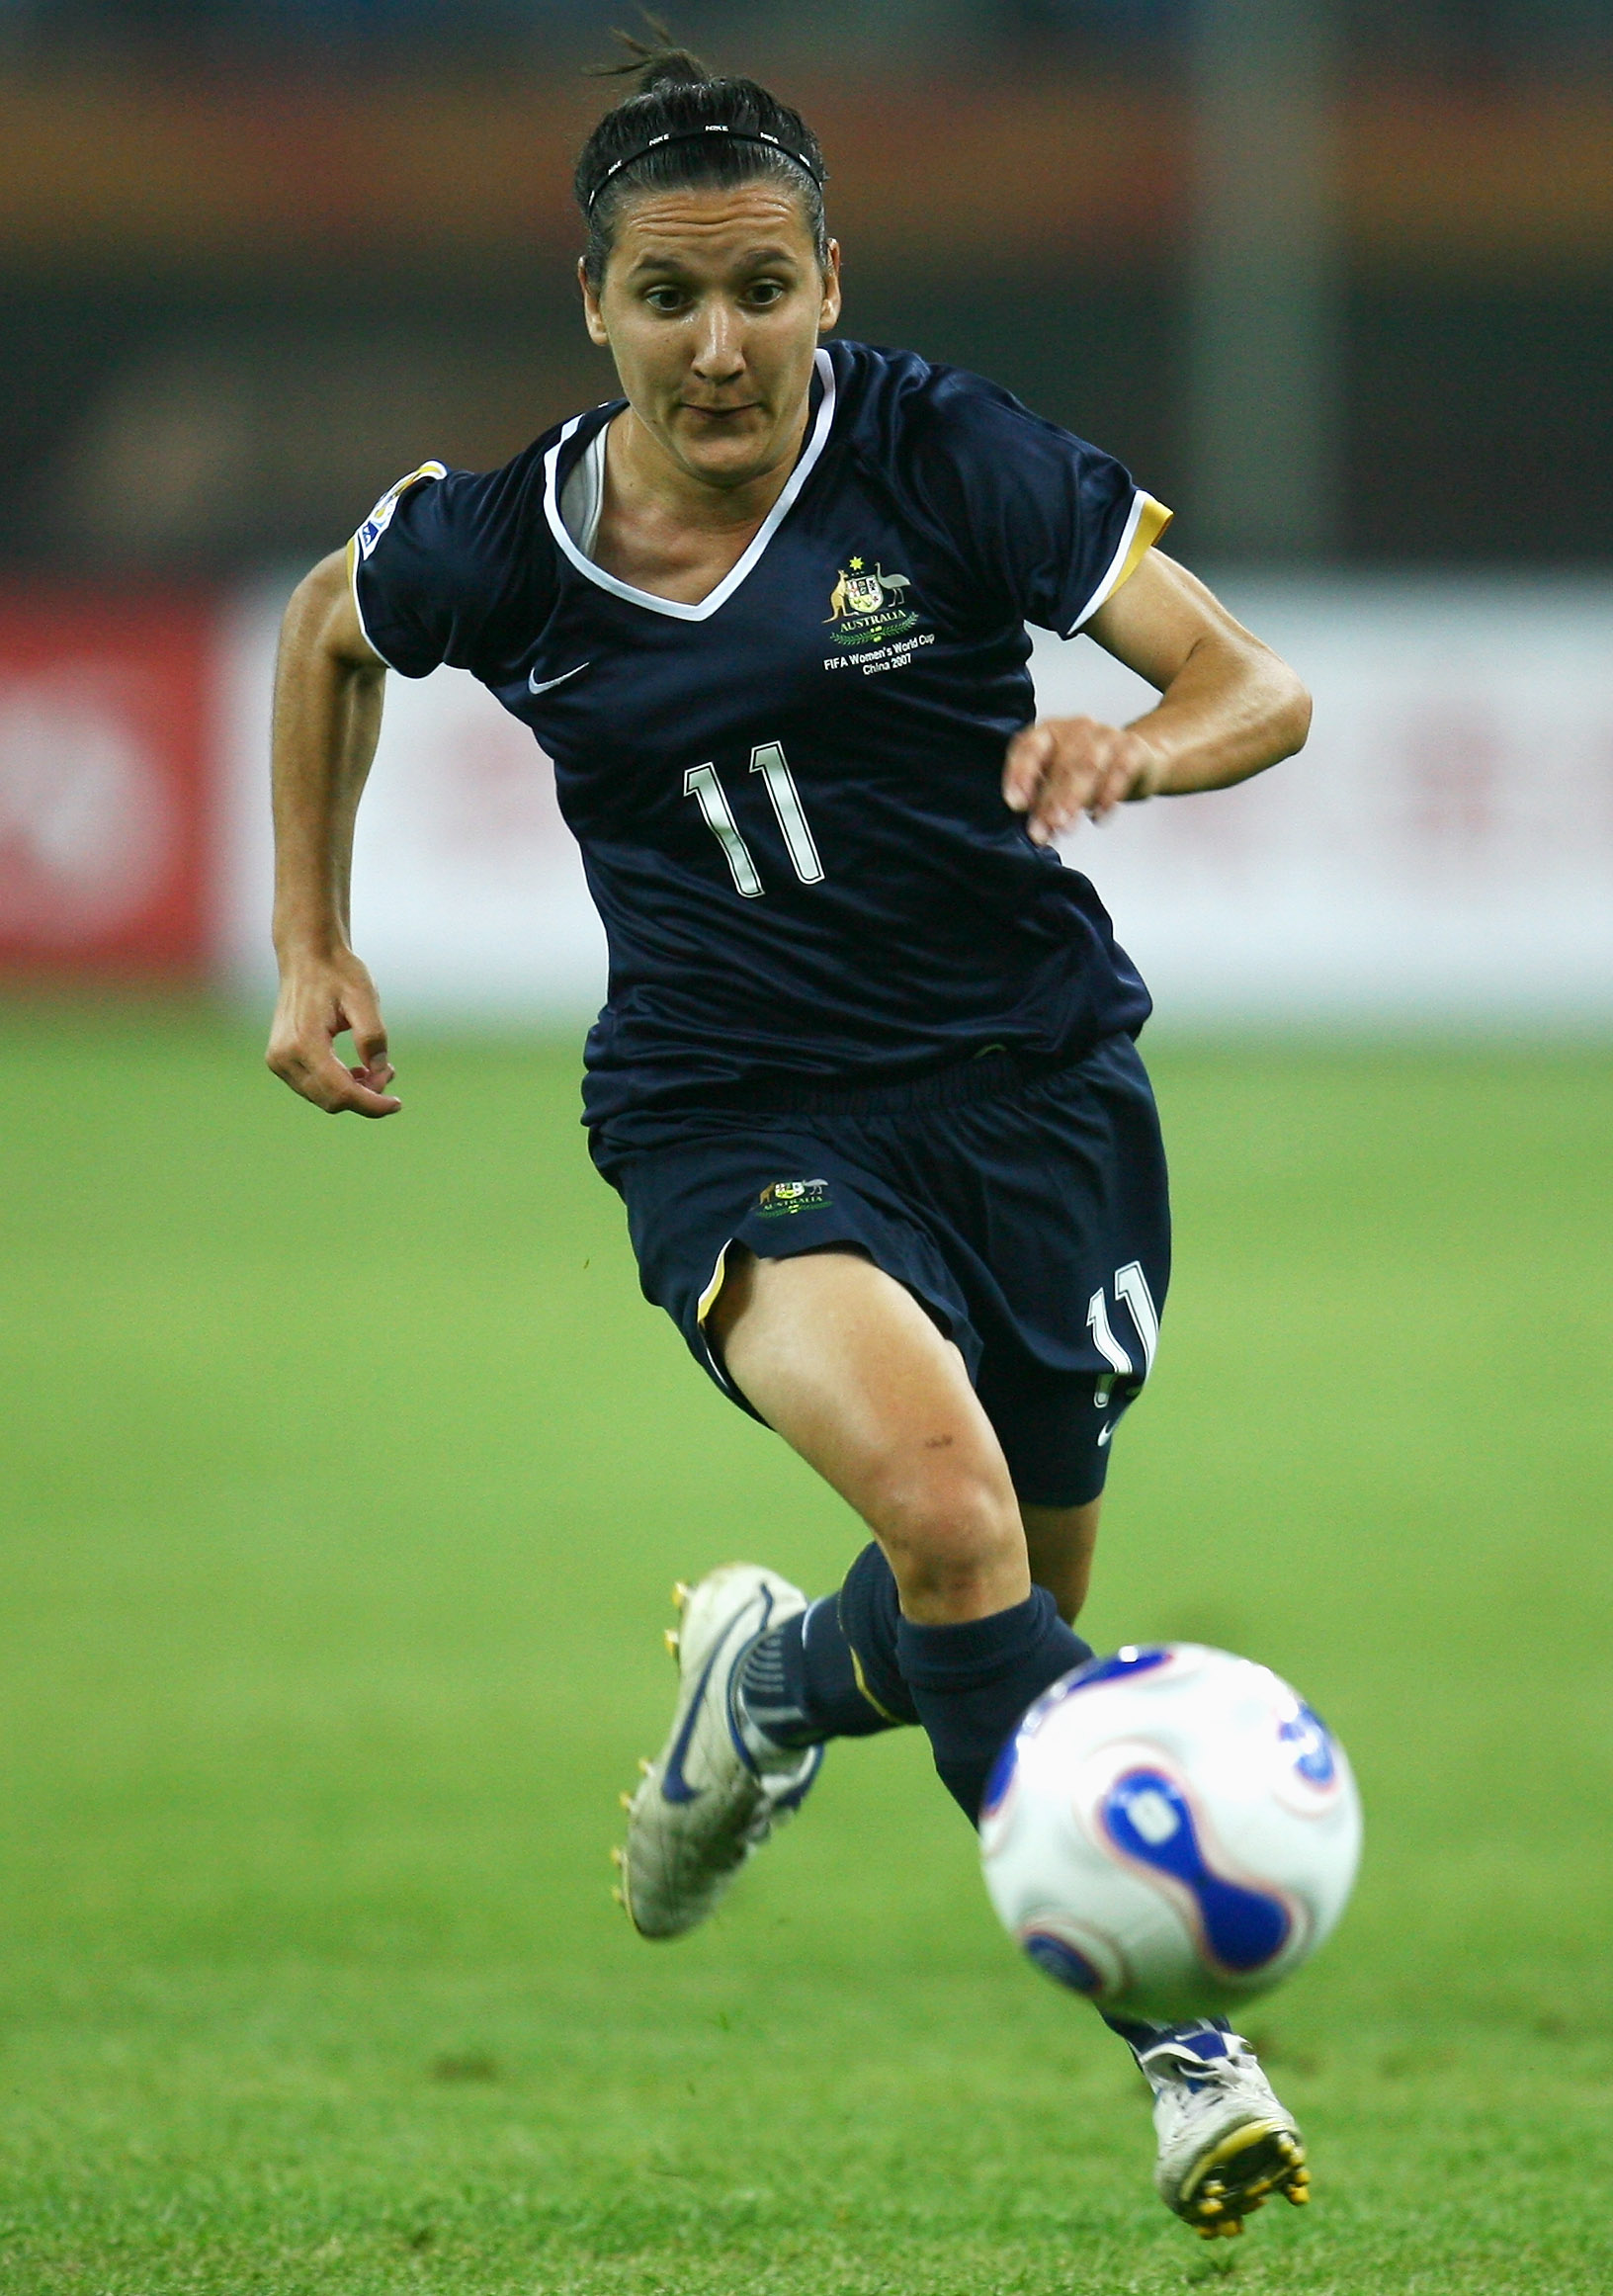 TIANJIN, CHINA - SEPTEMBER 23:  Lisa De Vanna of Australia in action during the Quarter Final of the Women's World Cup 2007 match between Brasil and Australia at Tianjin Olympic Center Stadium on September 23, 2007 in Tianjin, China.  (Photo by Paul Gilha